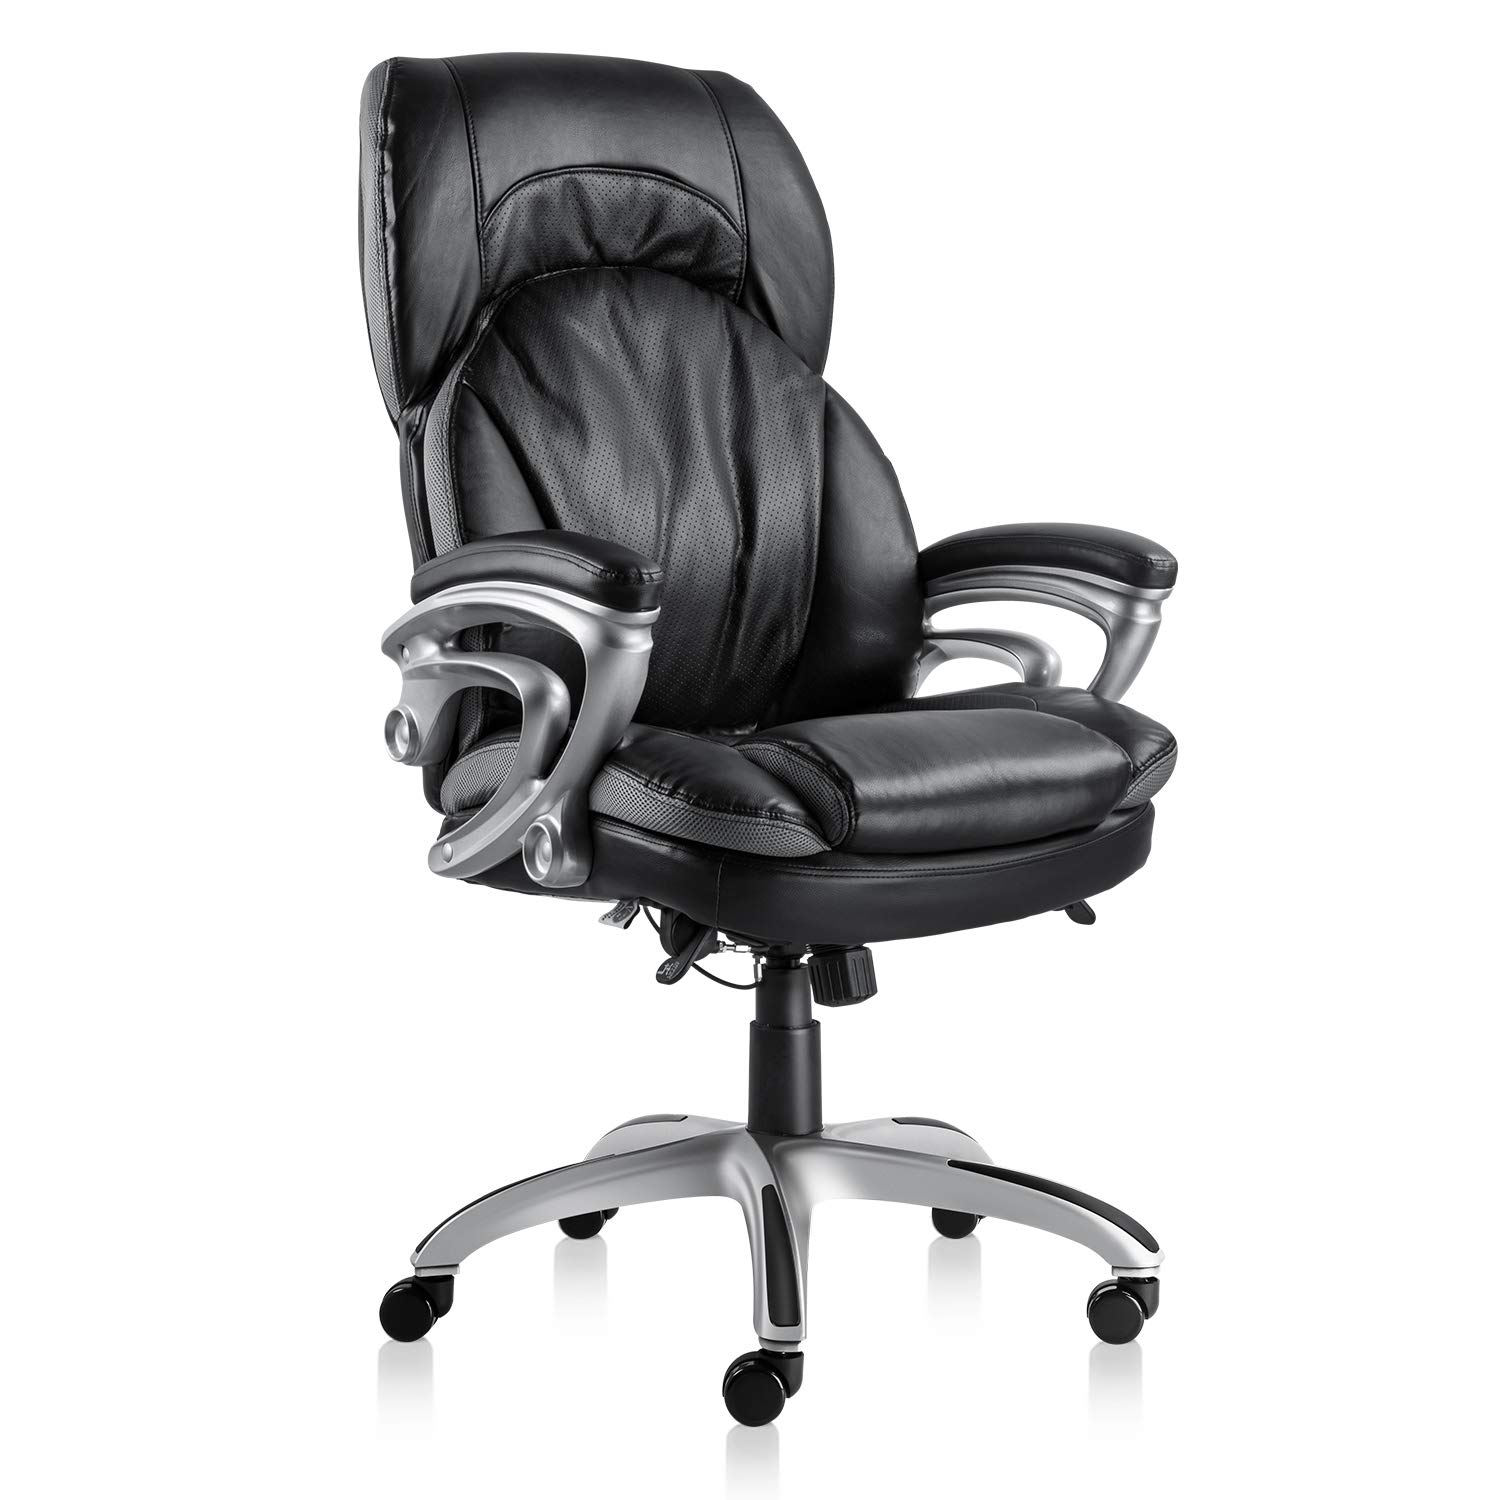 NKV High Back Executive Office Chair Ergonomic Home Office Chair Managerial Bonded Leather Chair Thick Cushion Support (Black)